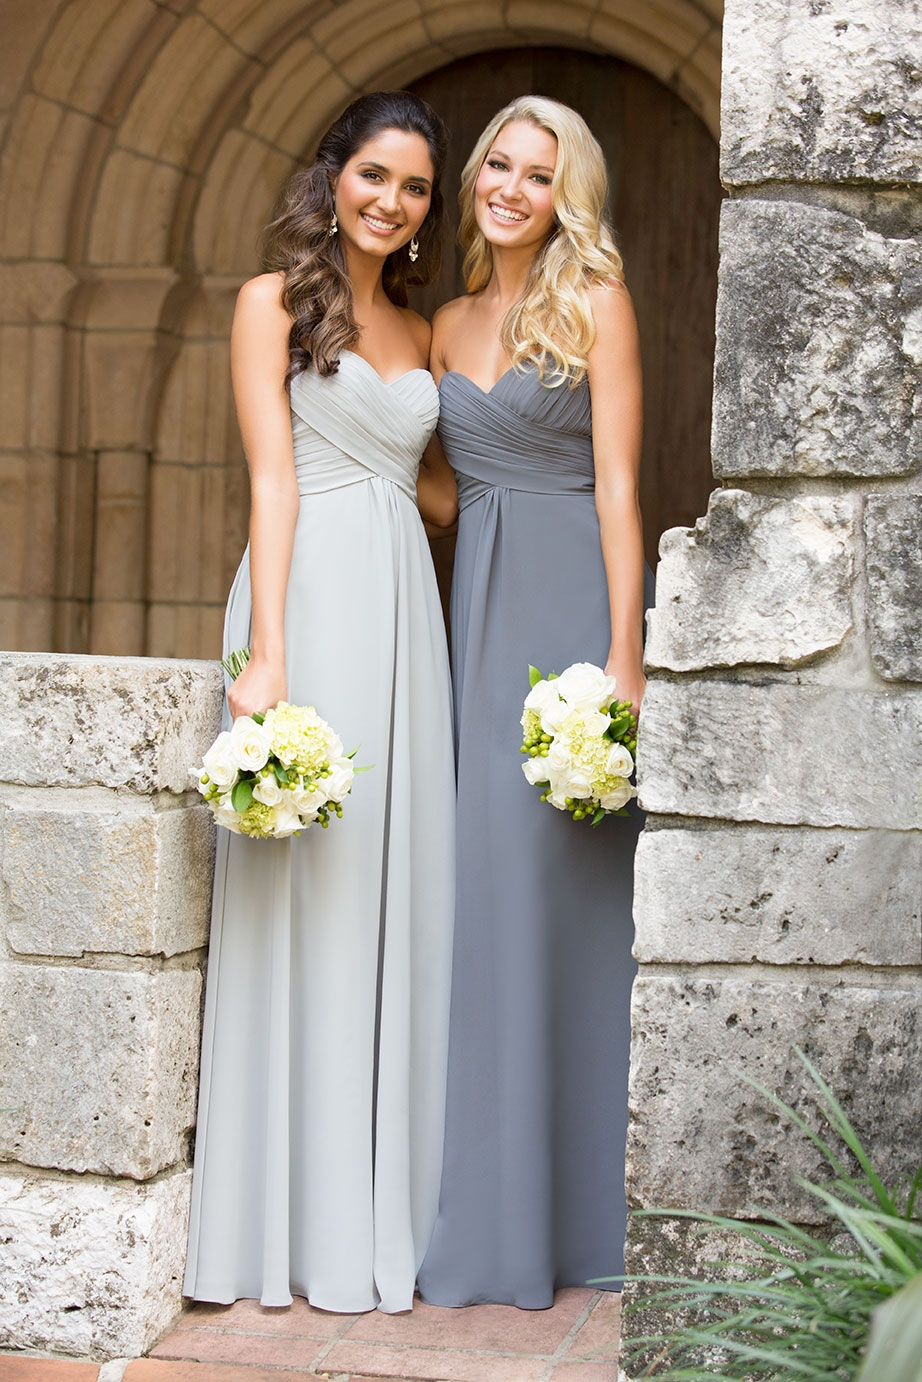 Long prom dresses 2015 bridesmaid dressformal evening dresses long prom dresses 2015 bridesmaid dressformal evening dresses party dressesbeaded ombrellifo Image collections